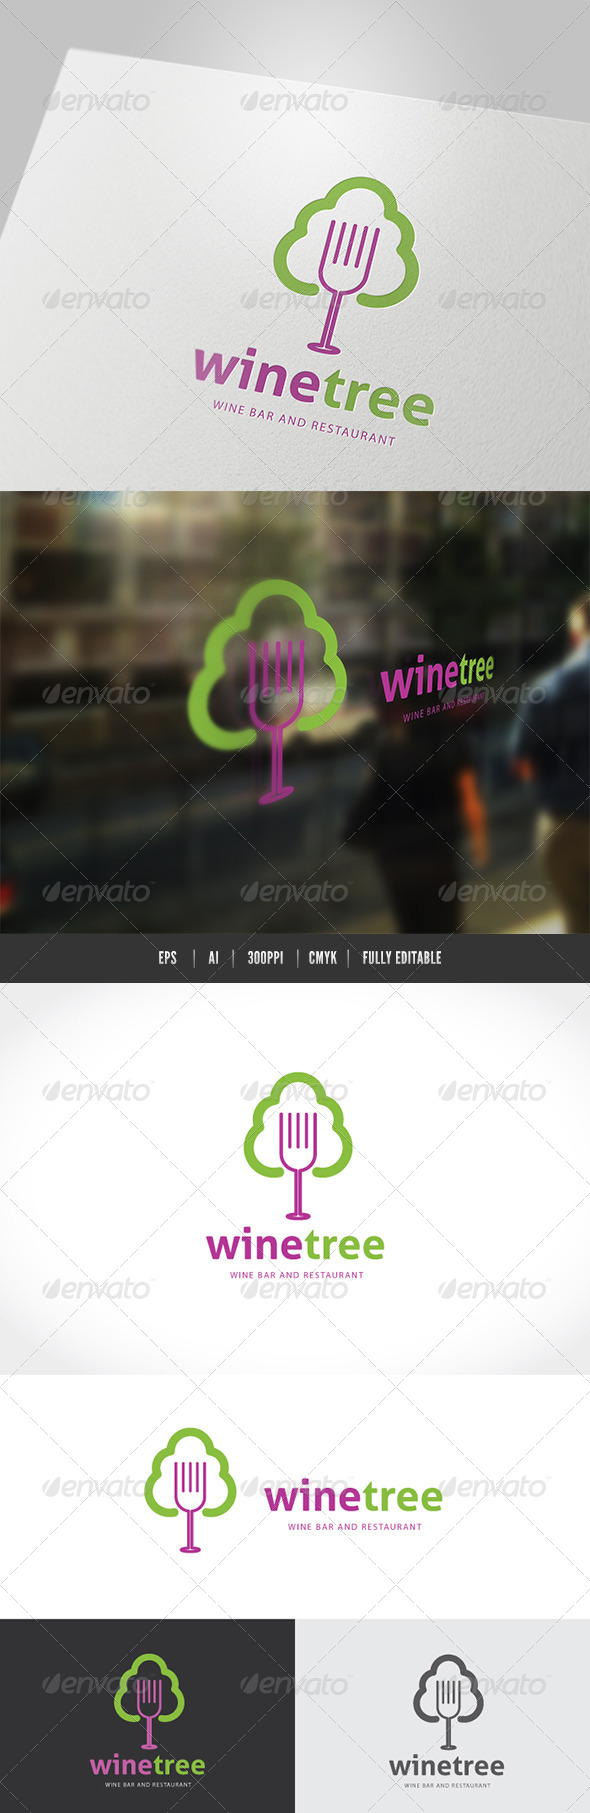 GraphicRiver Wine Tree 7470506